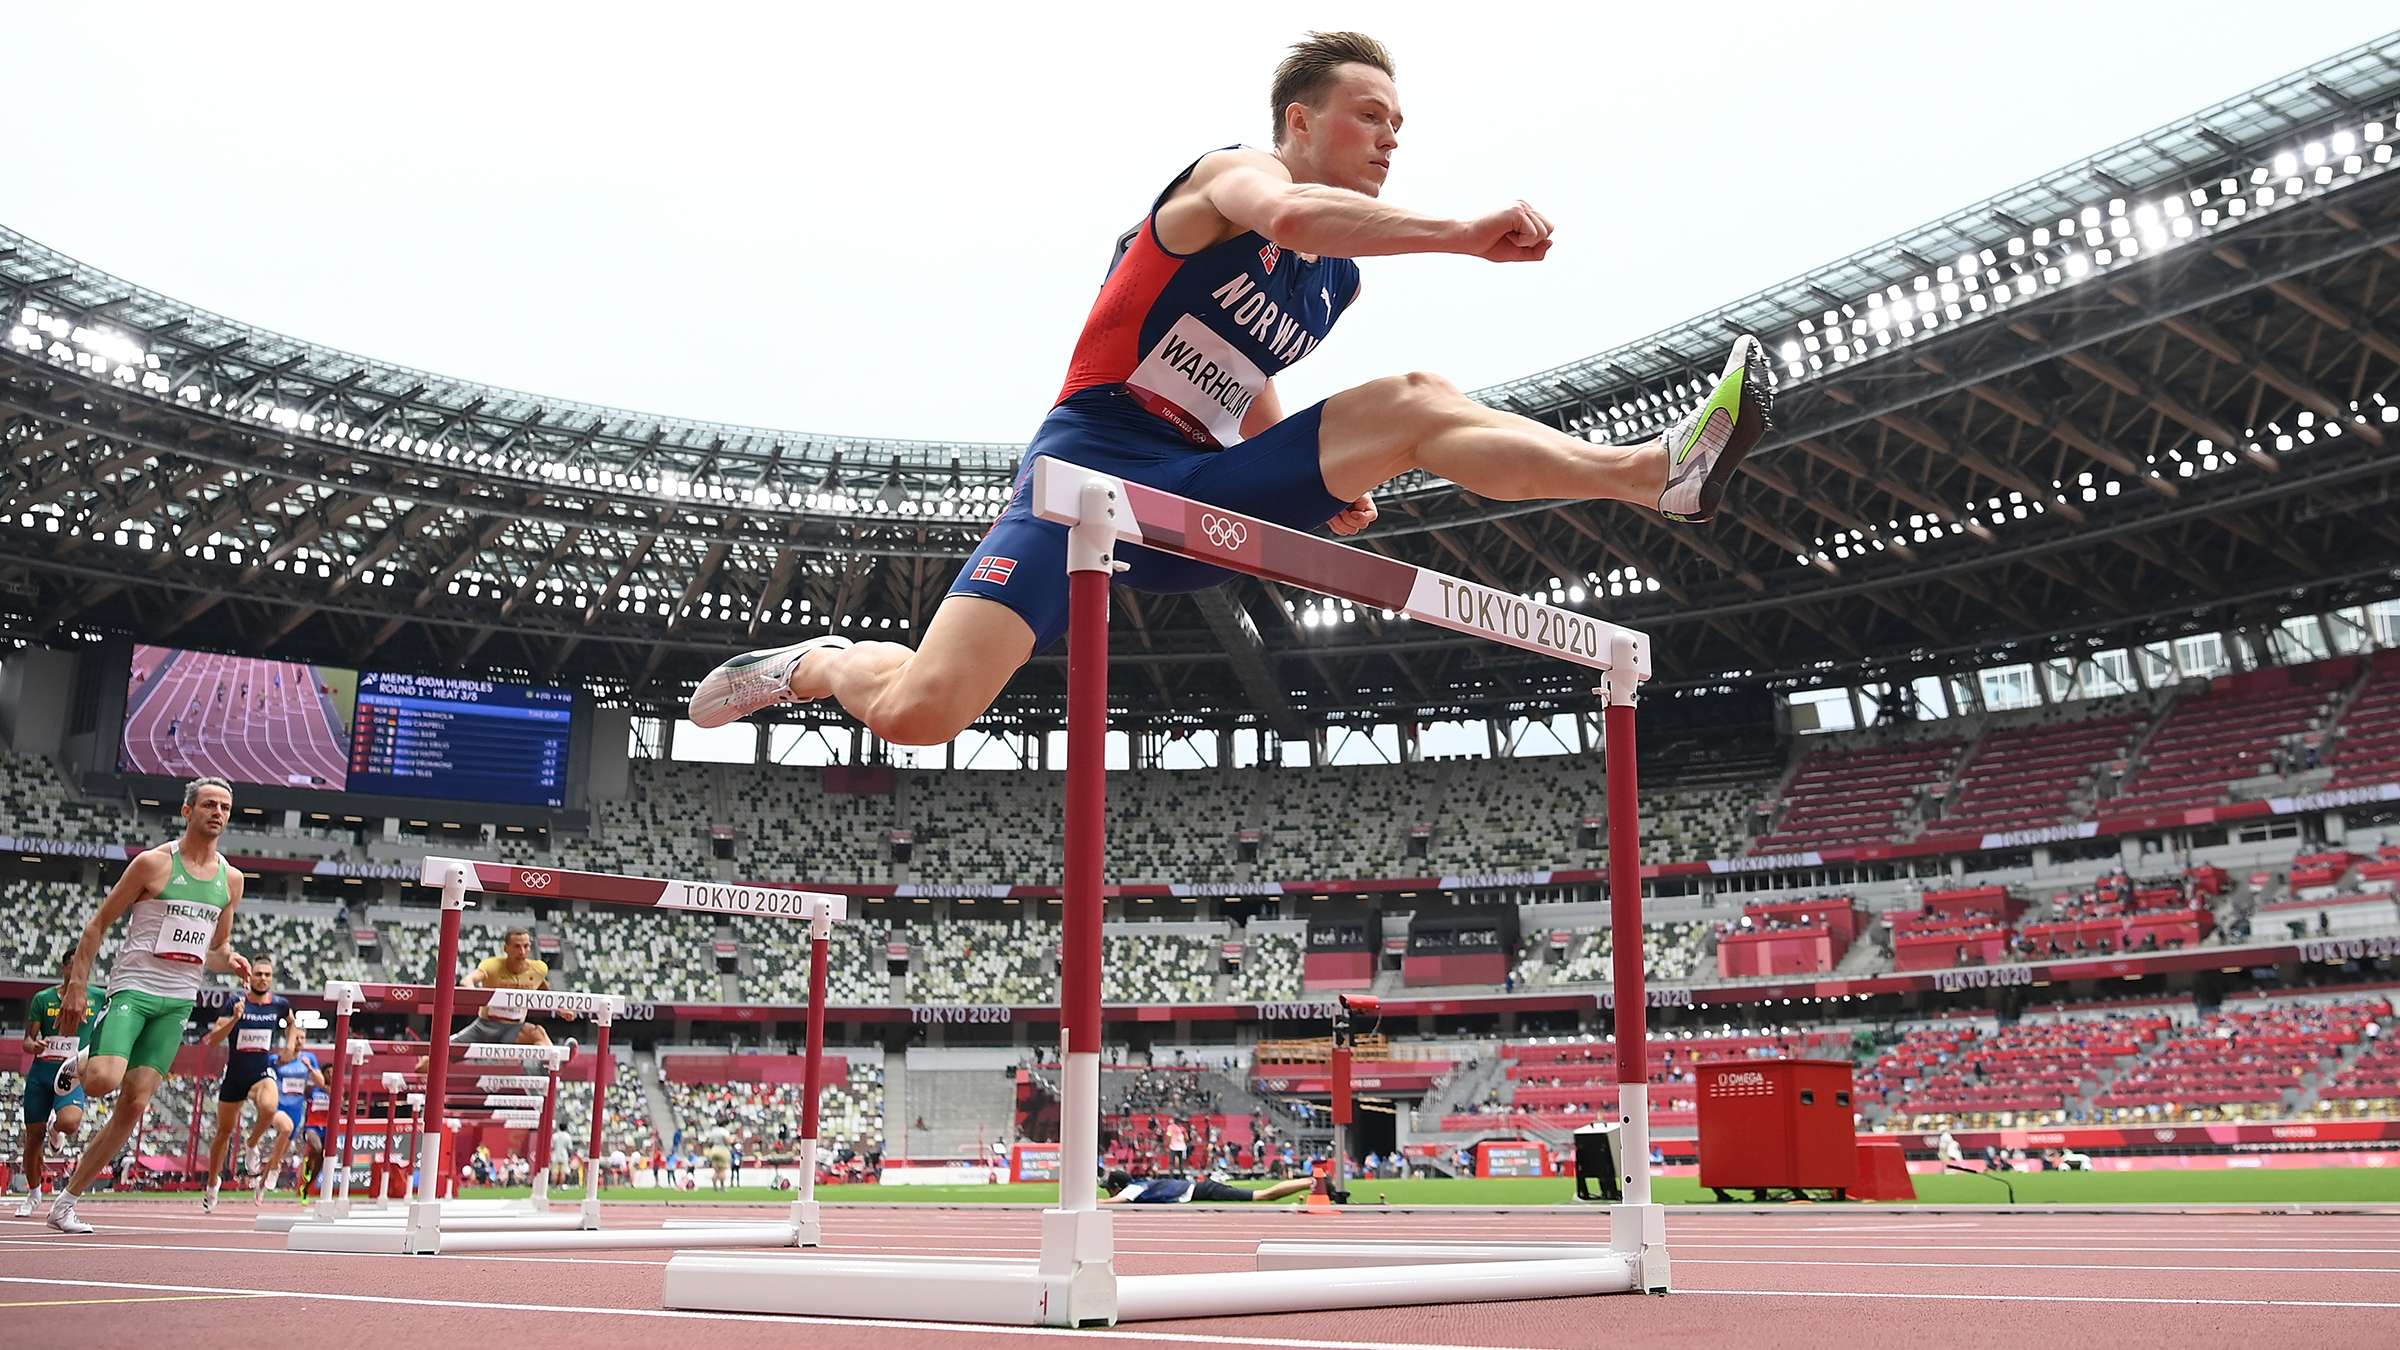 Norway's Karsten Warholm competes in the 400m hurdles heats on Friday, July 30.